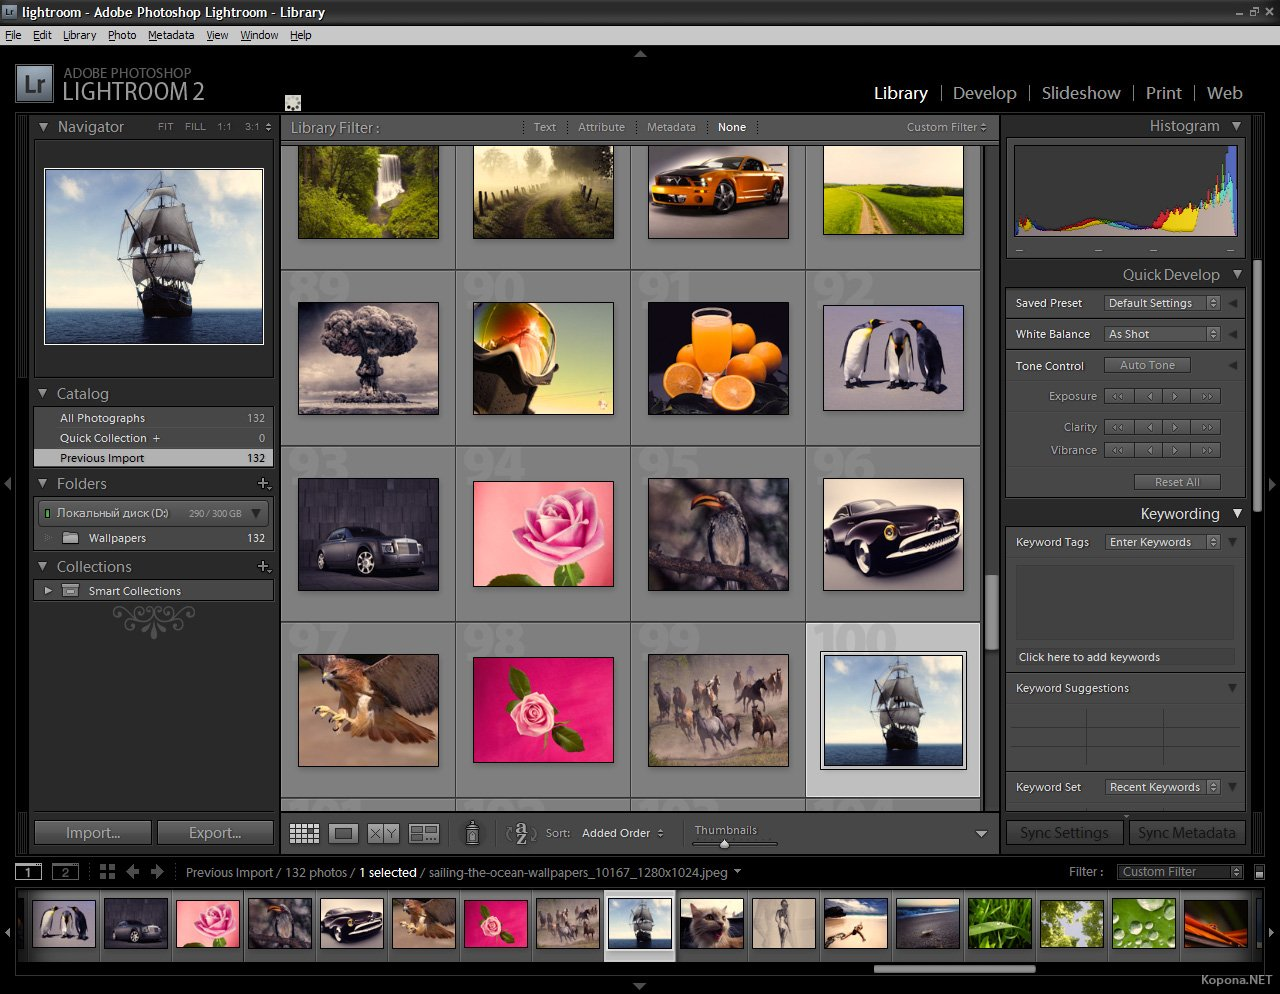 Adobe photoshop lightroom 3.4 incld crack download mac